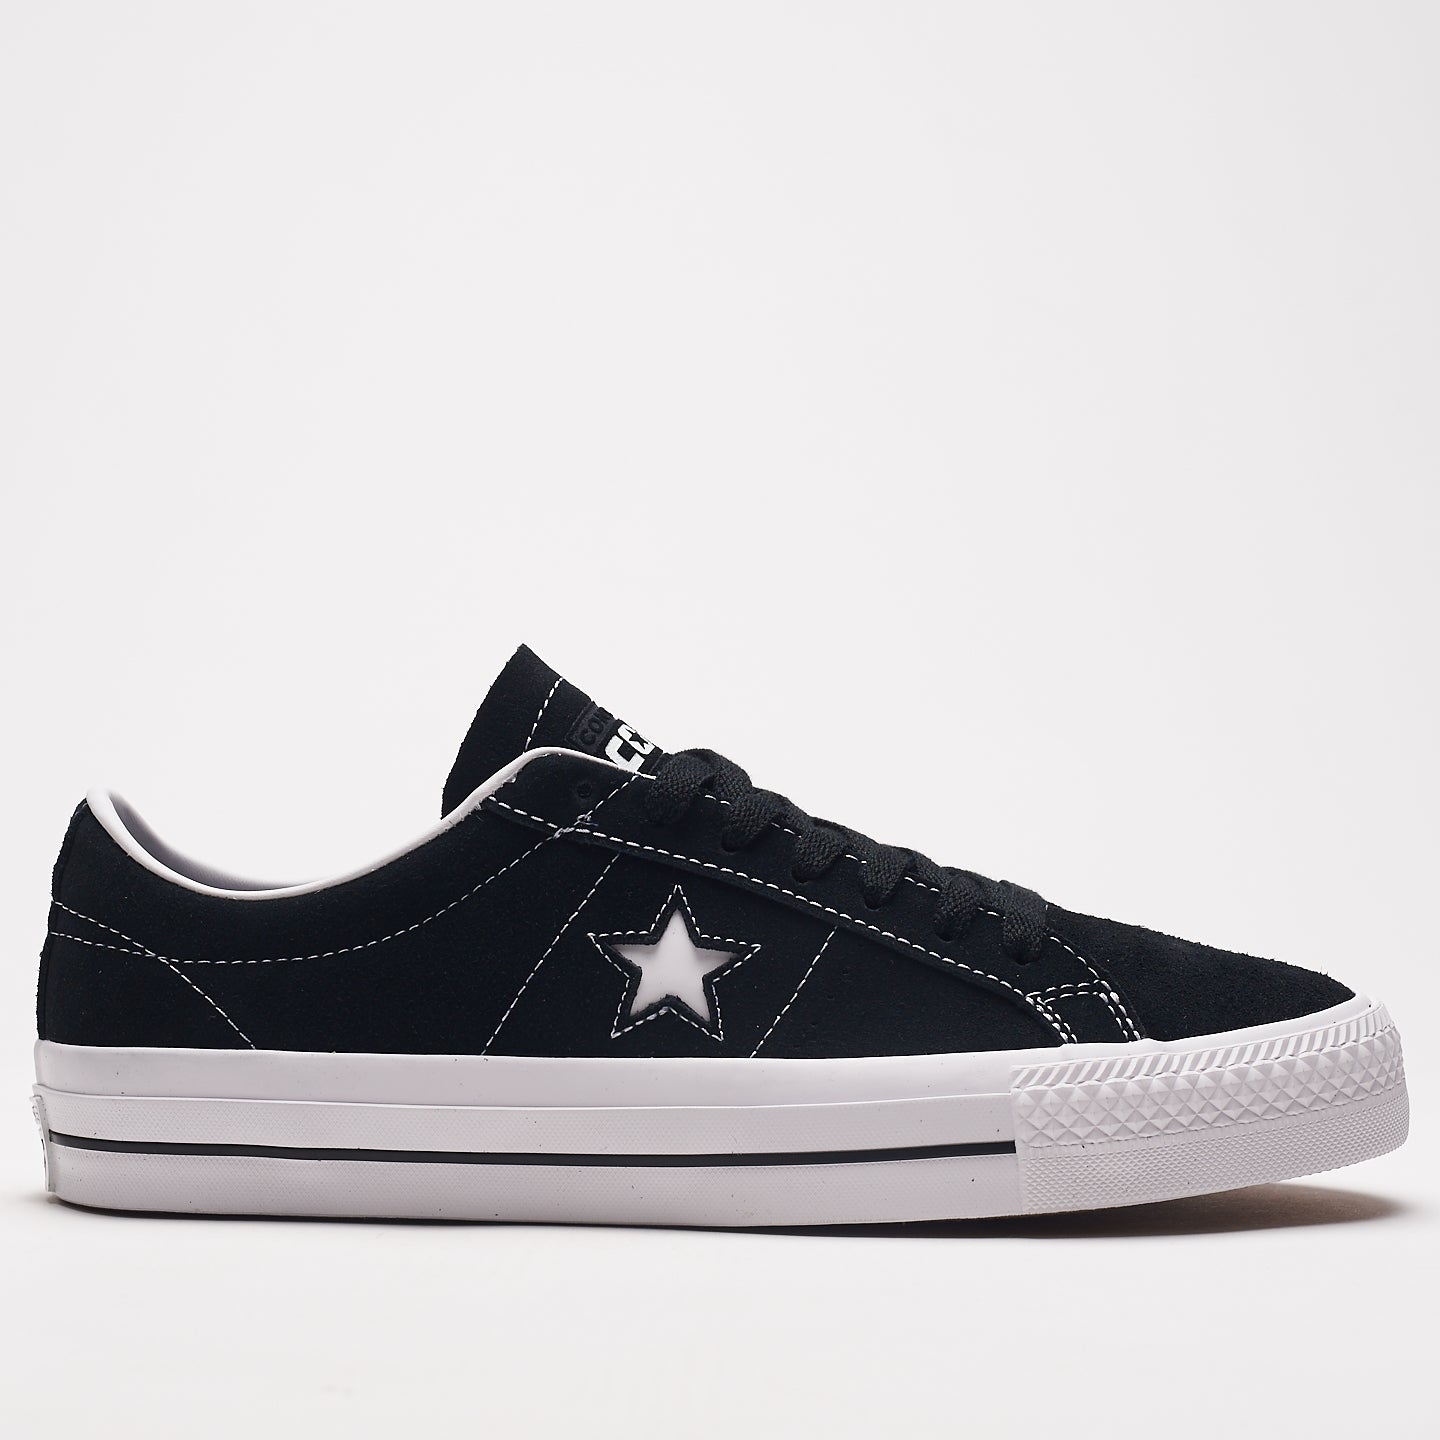 ONE STAR PRO LOW TOP BLACK